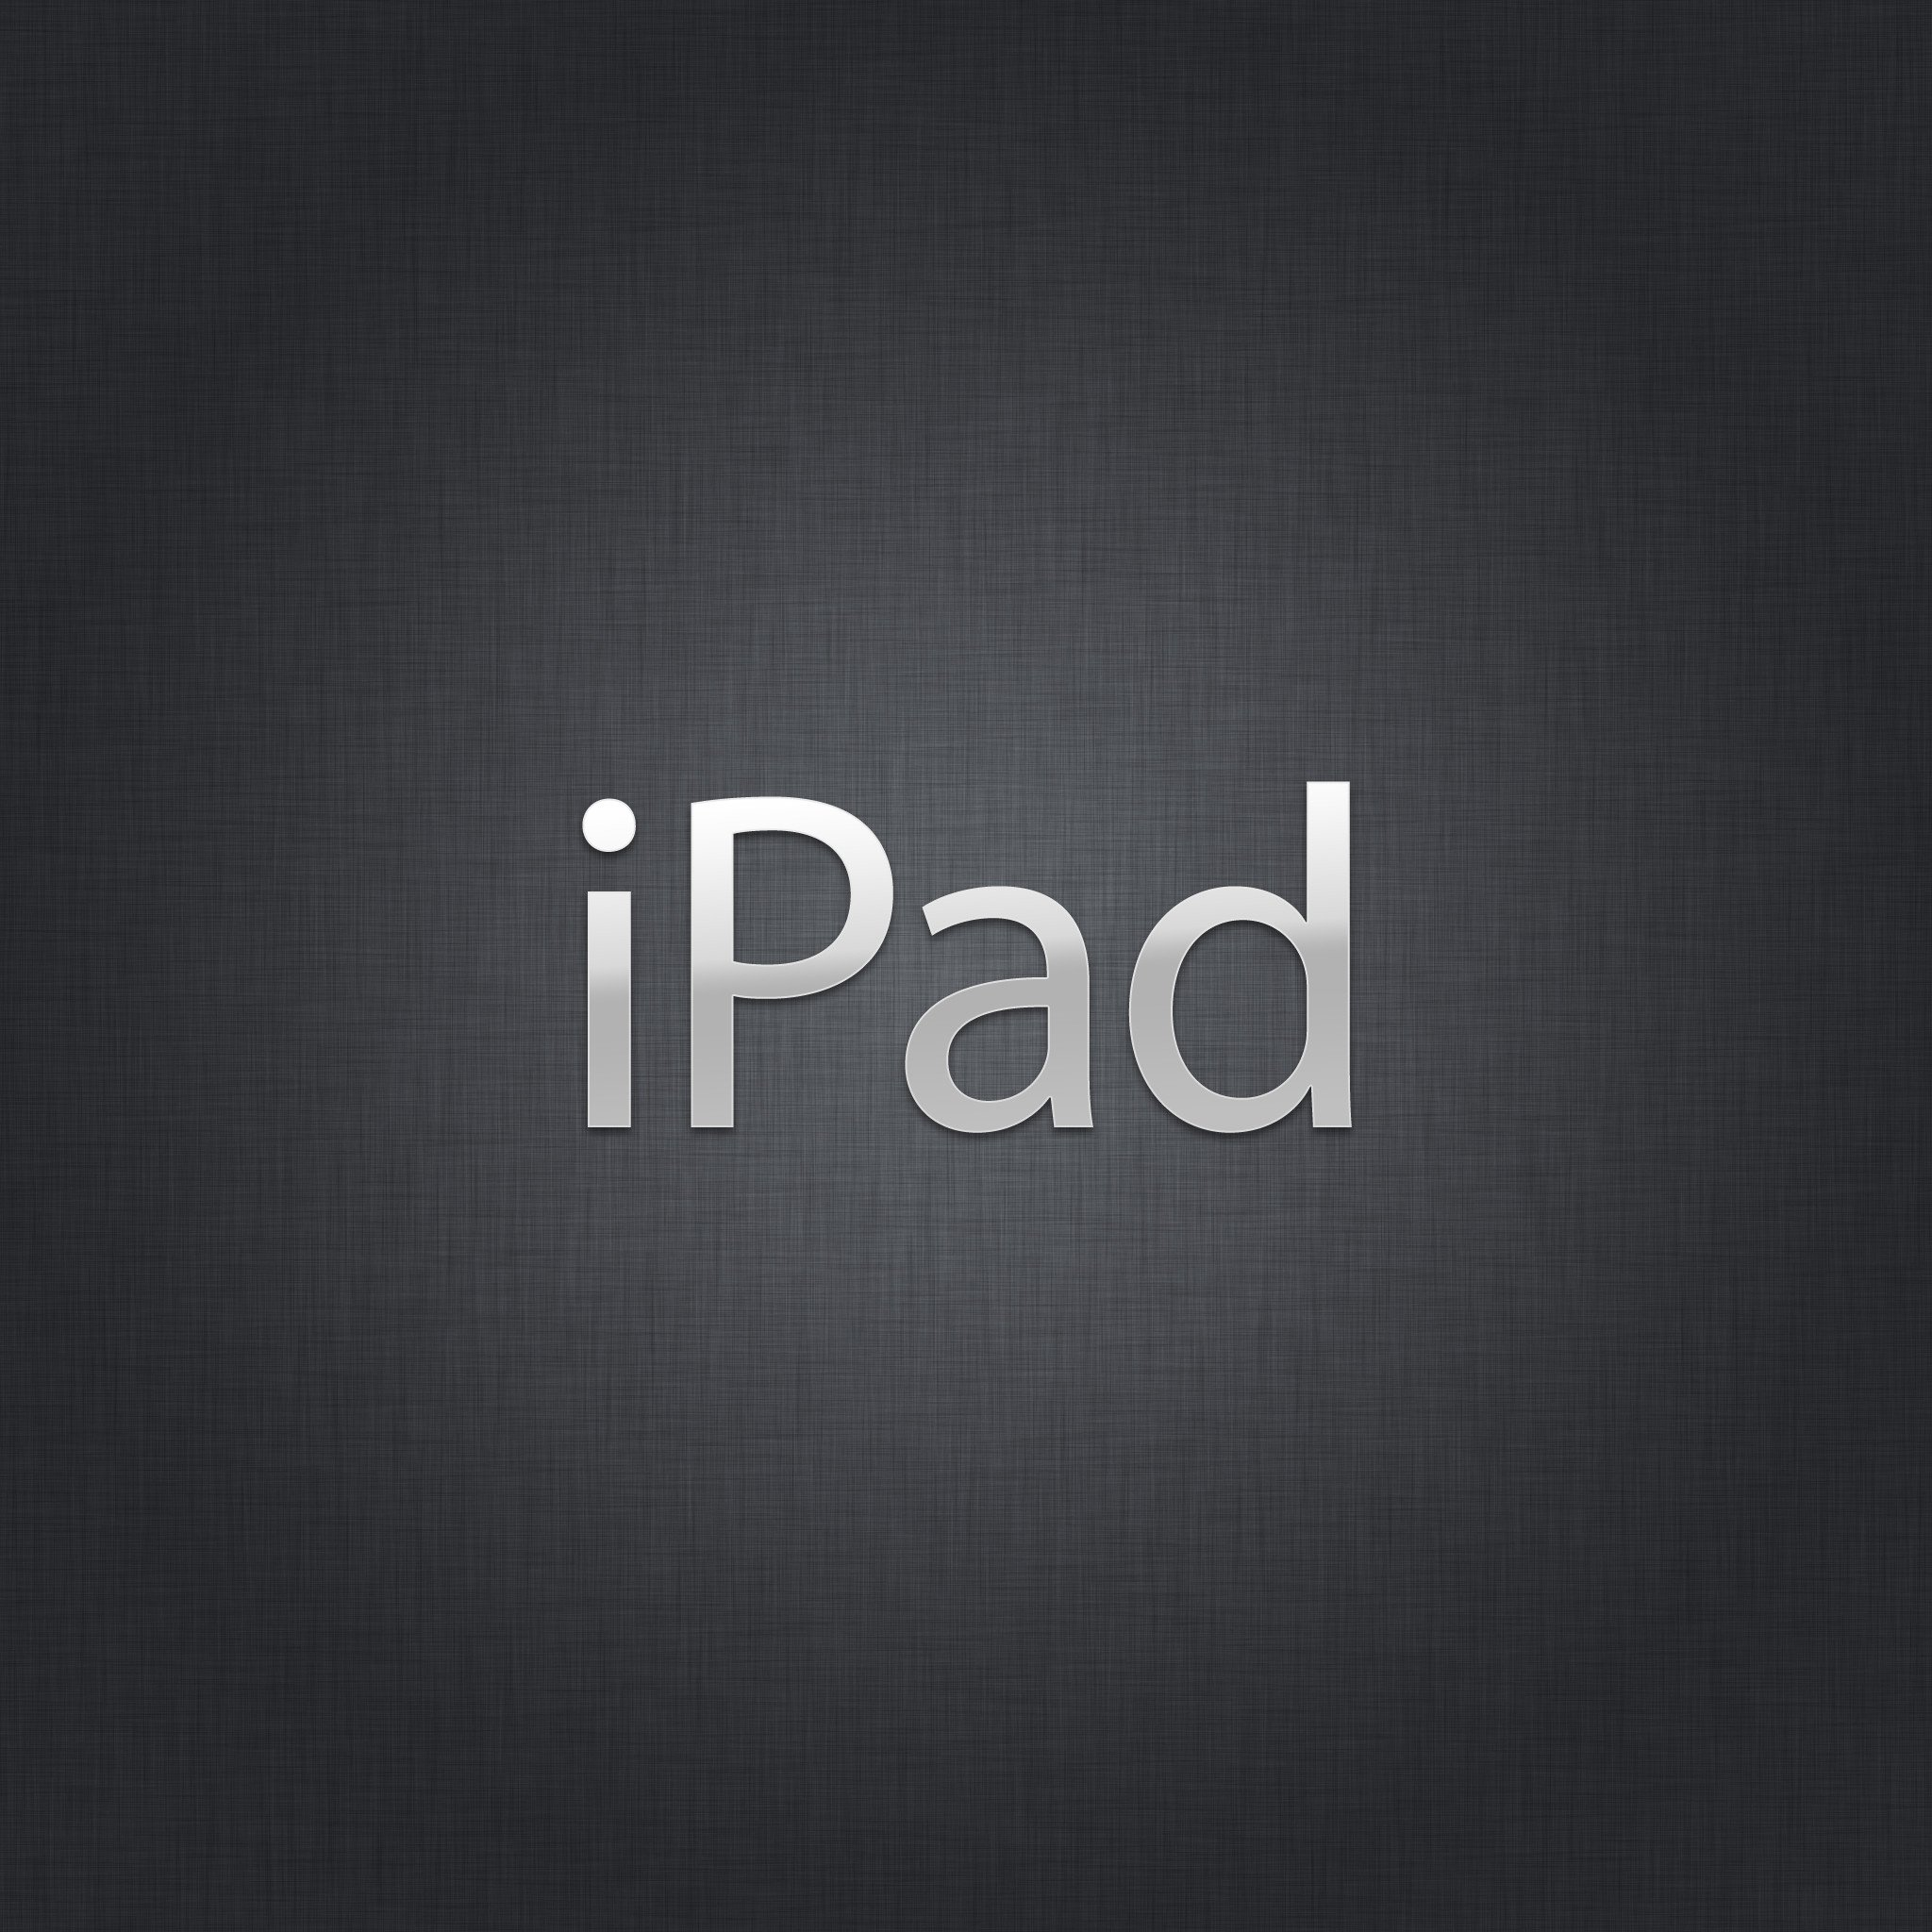 Ipad Iphone Imac Macbook Pro Air Names Wallpapers HD Wallpapers 2048x2048